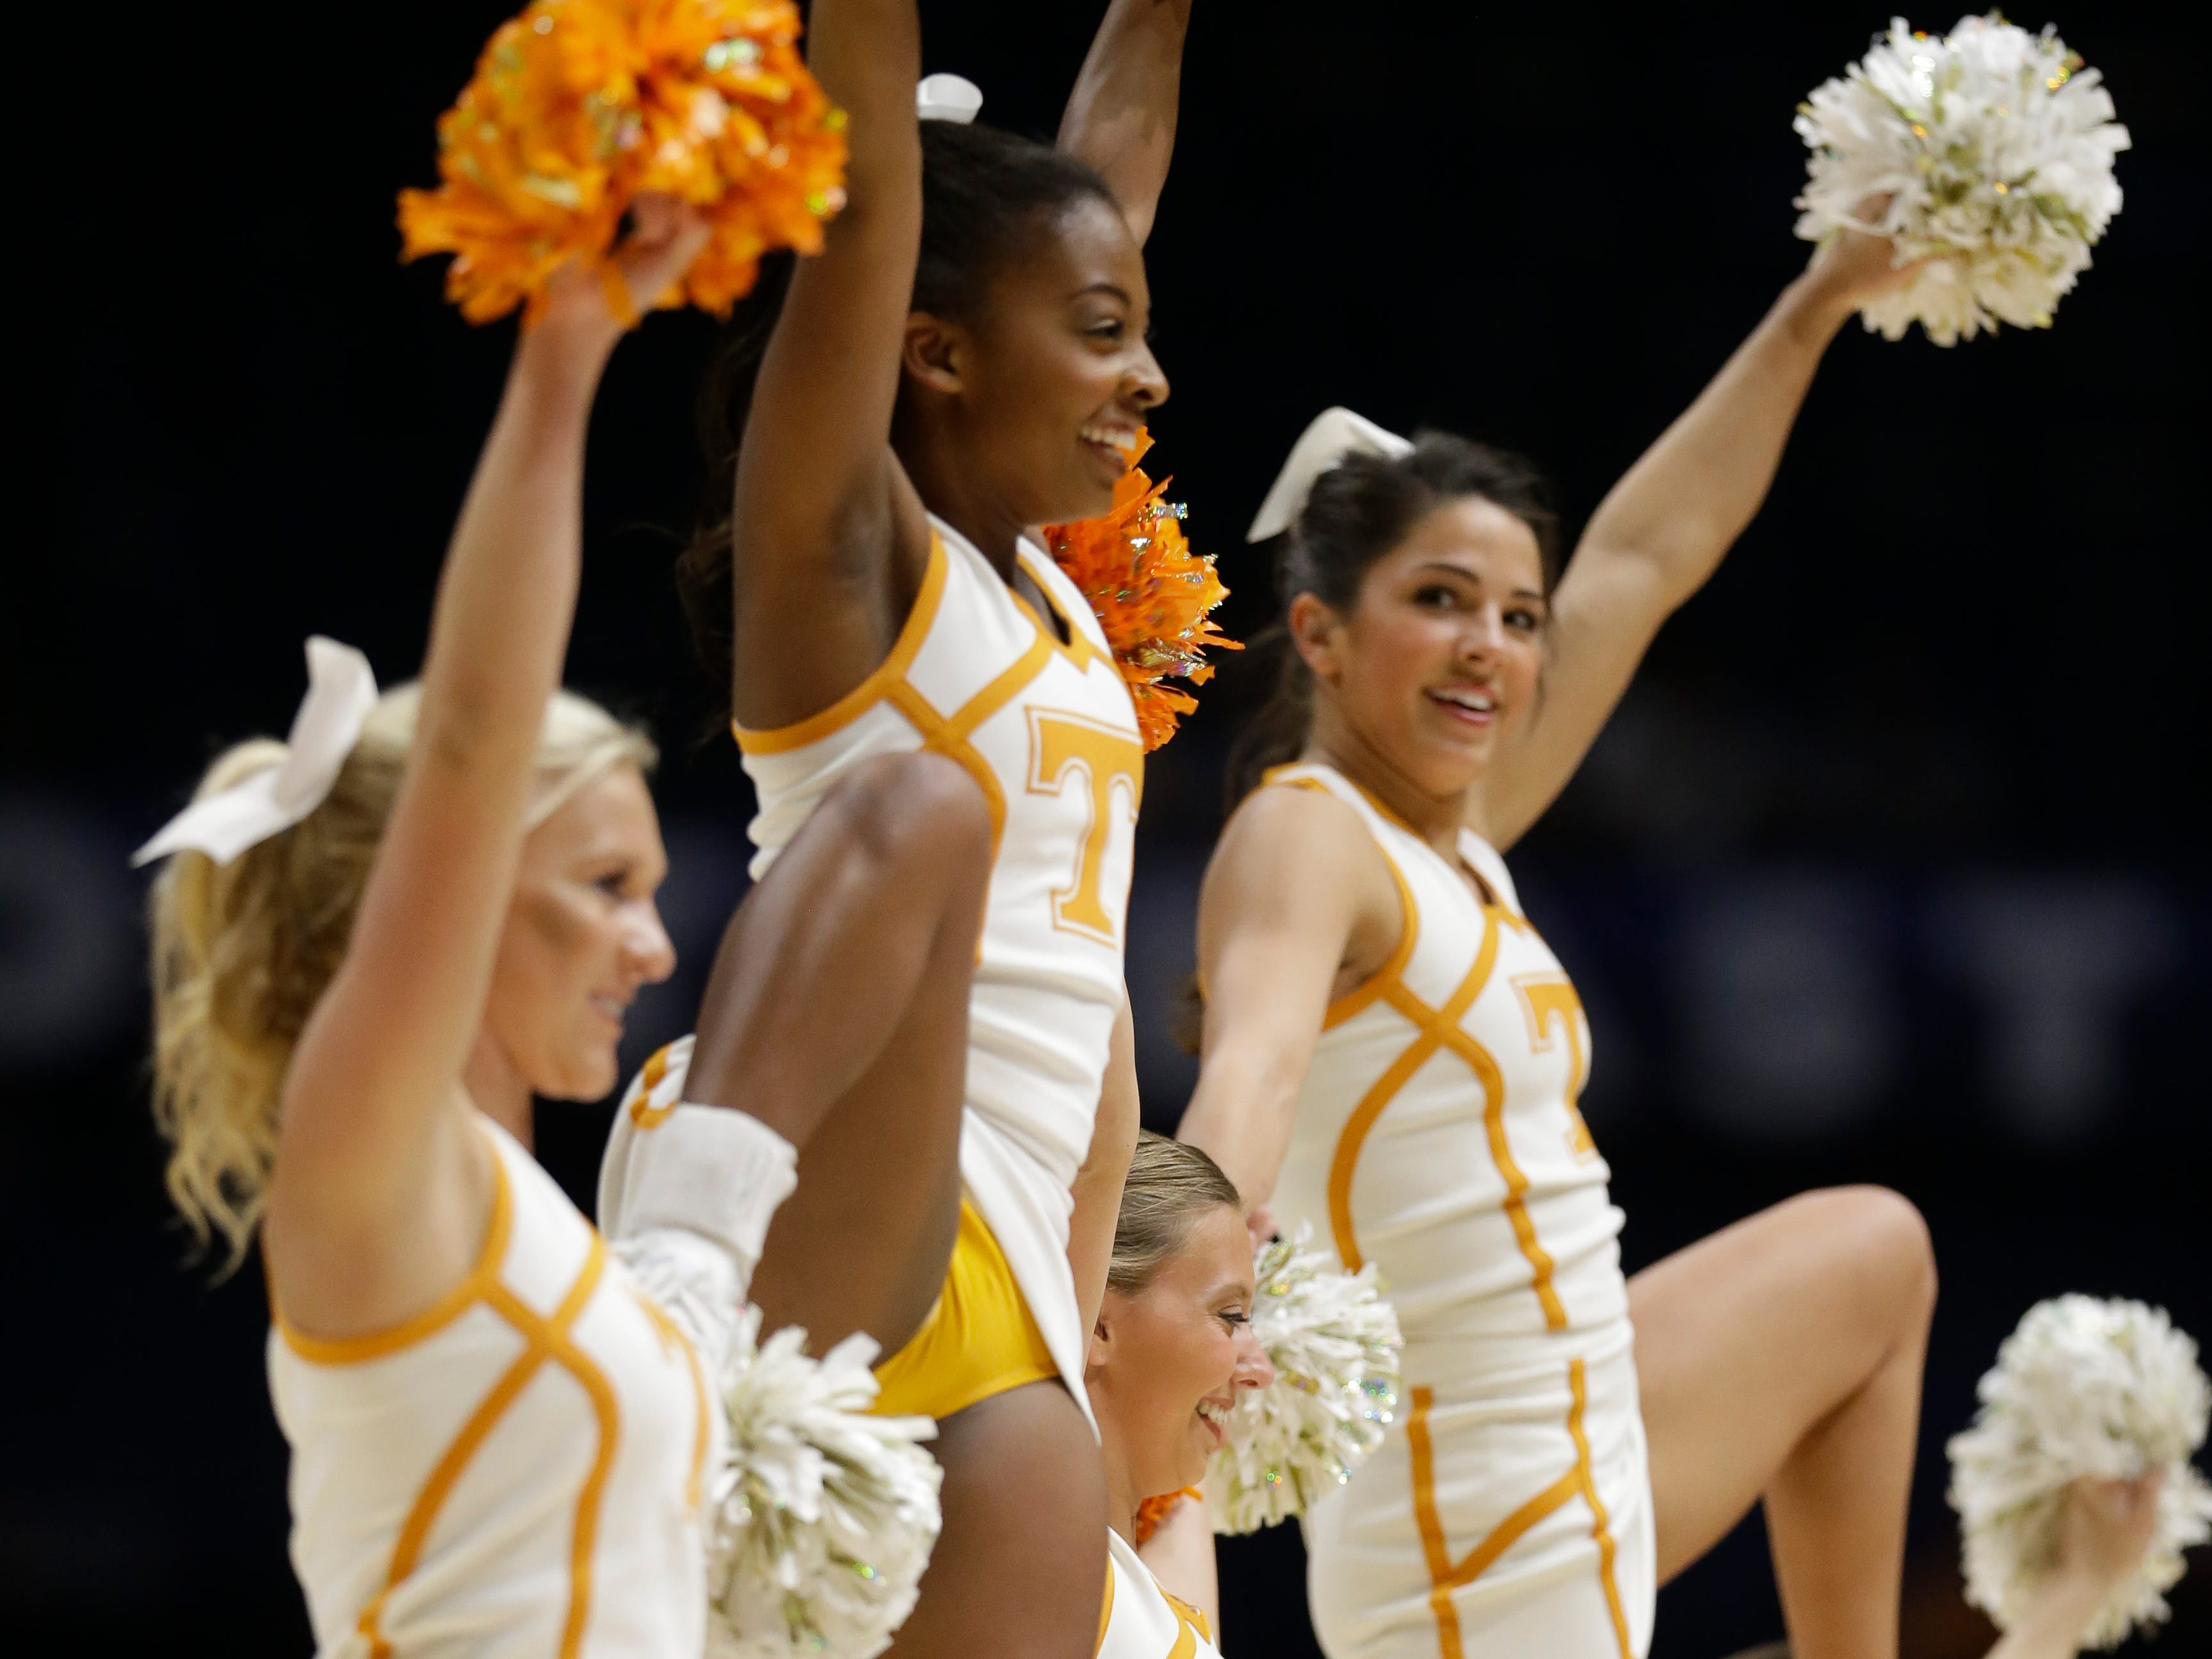 Tennessee cheerleaders perform during the first half of an NCAA college basketball game against Auburn in the Southeastern Conference tournament in Nashville, Tenn., Wednesday, March 9, 2016. (AP Photo/Mark Humphrey)